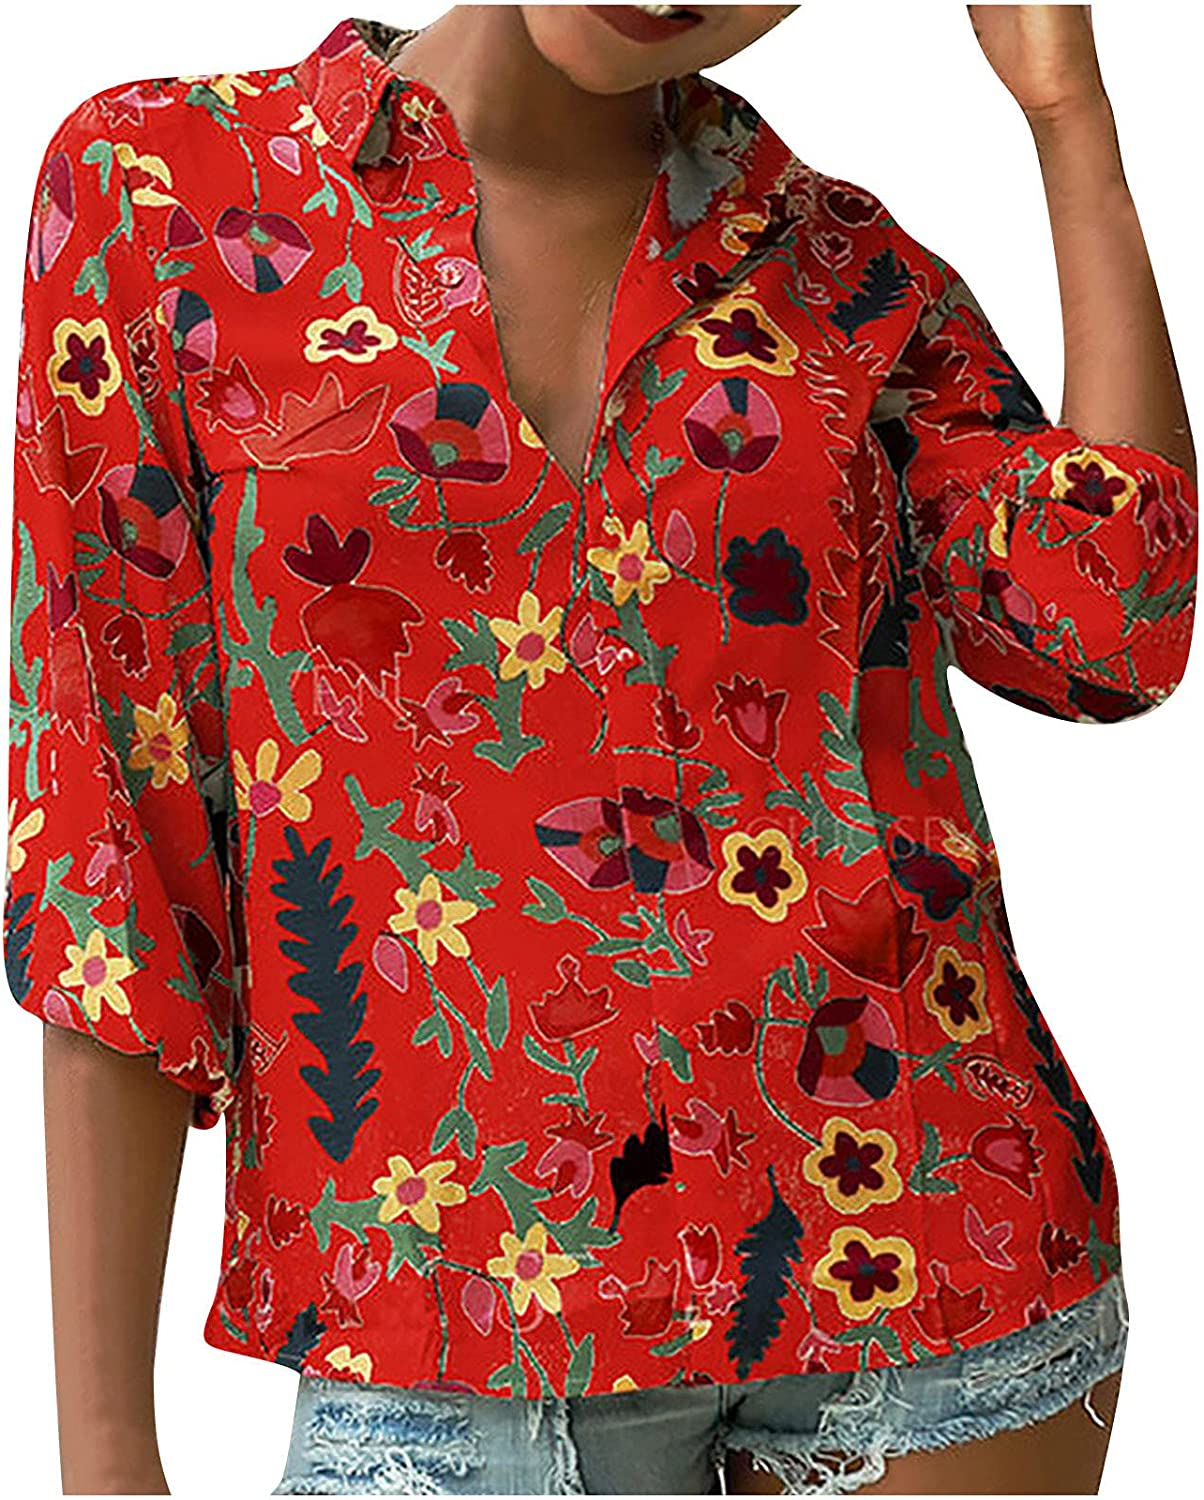 Vintage Blouse for Women 3/4 Sleeve Shirt Lapel Floral Tshirt Button Down Tees Ladies Lightweight Tunic